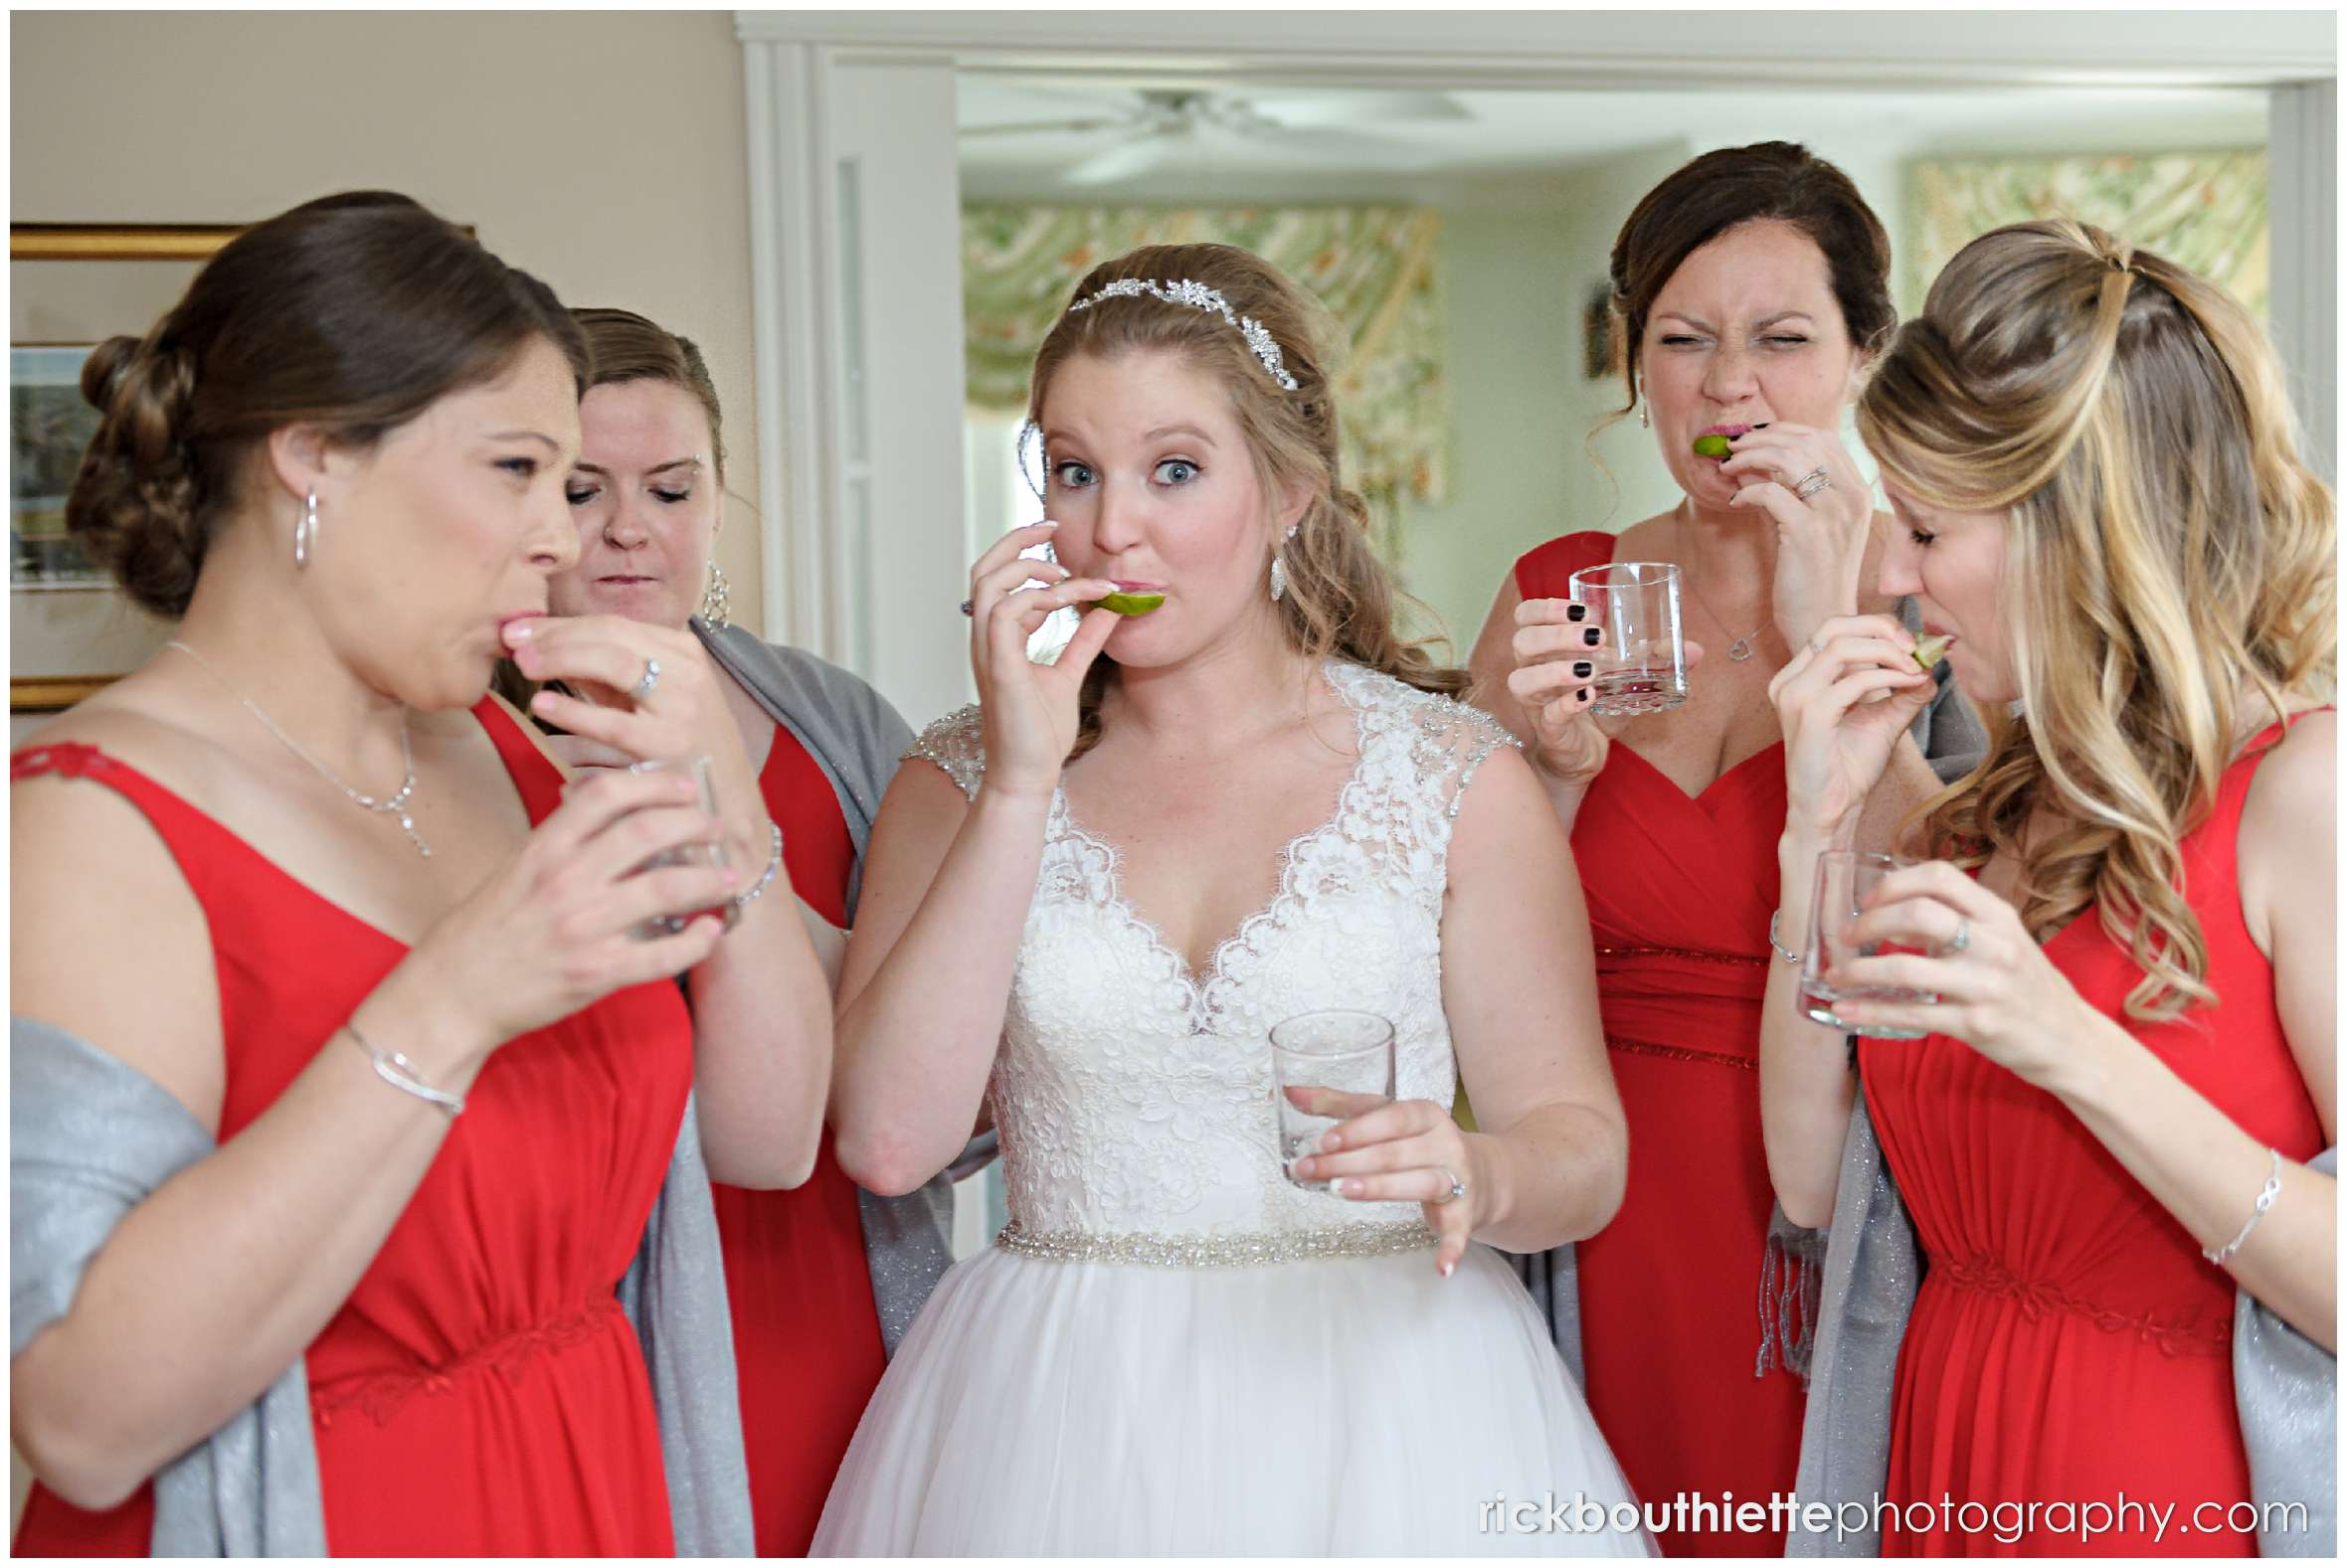 the bride and her bridesmaids enjoy a shot of tequila before her wedding ceremony at the mountain view grand resort